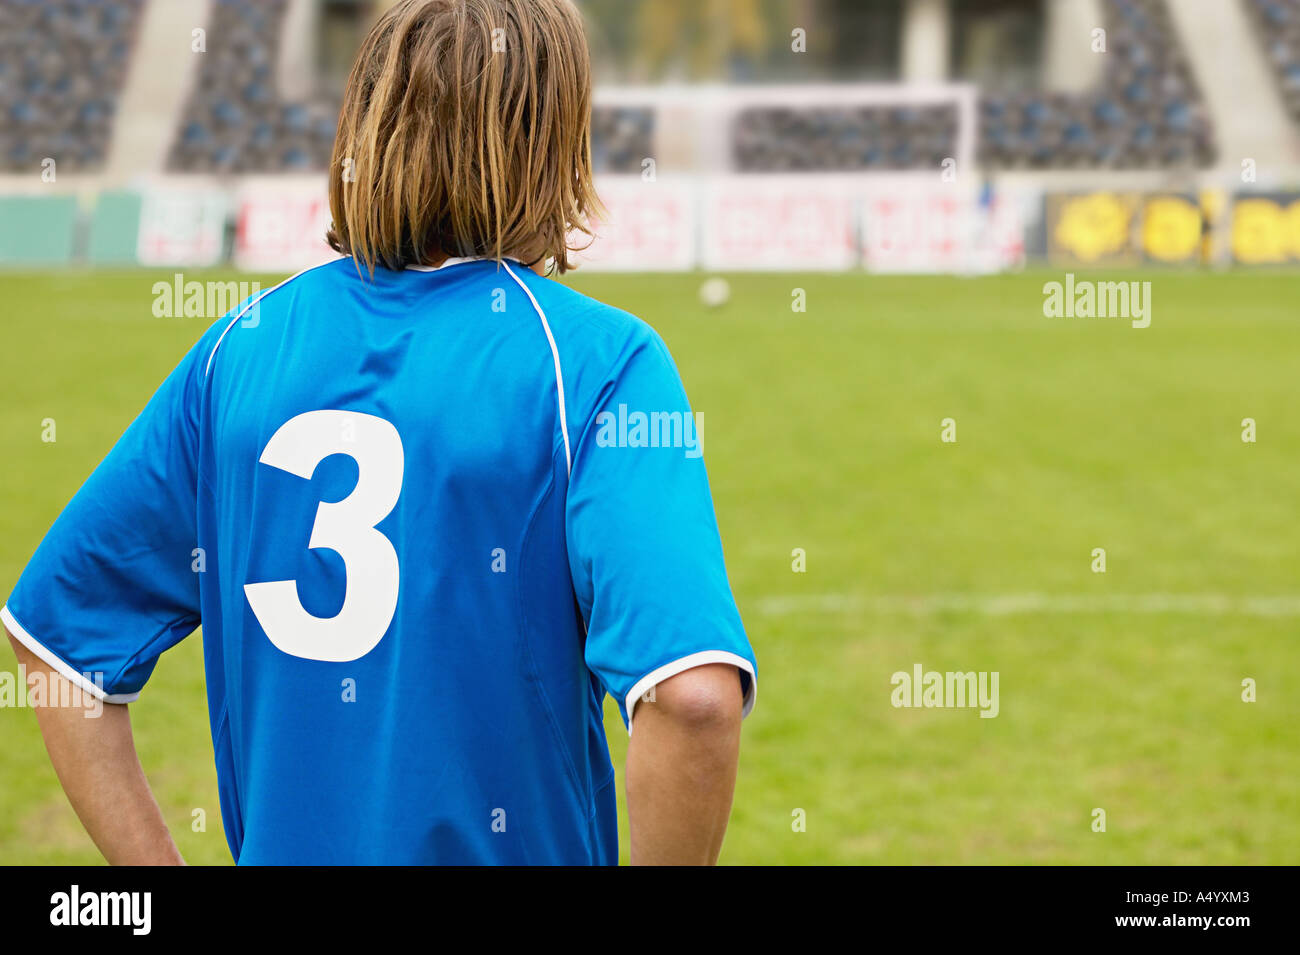 Footballer on the pitch - Stock Image